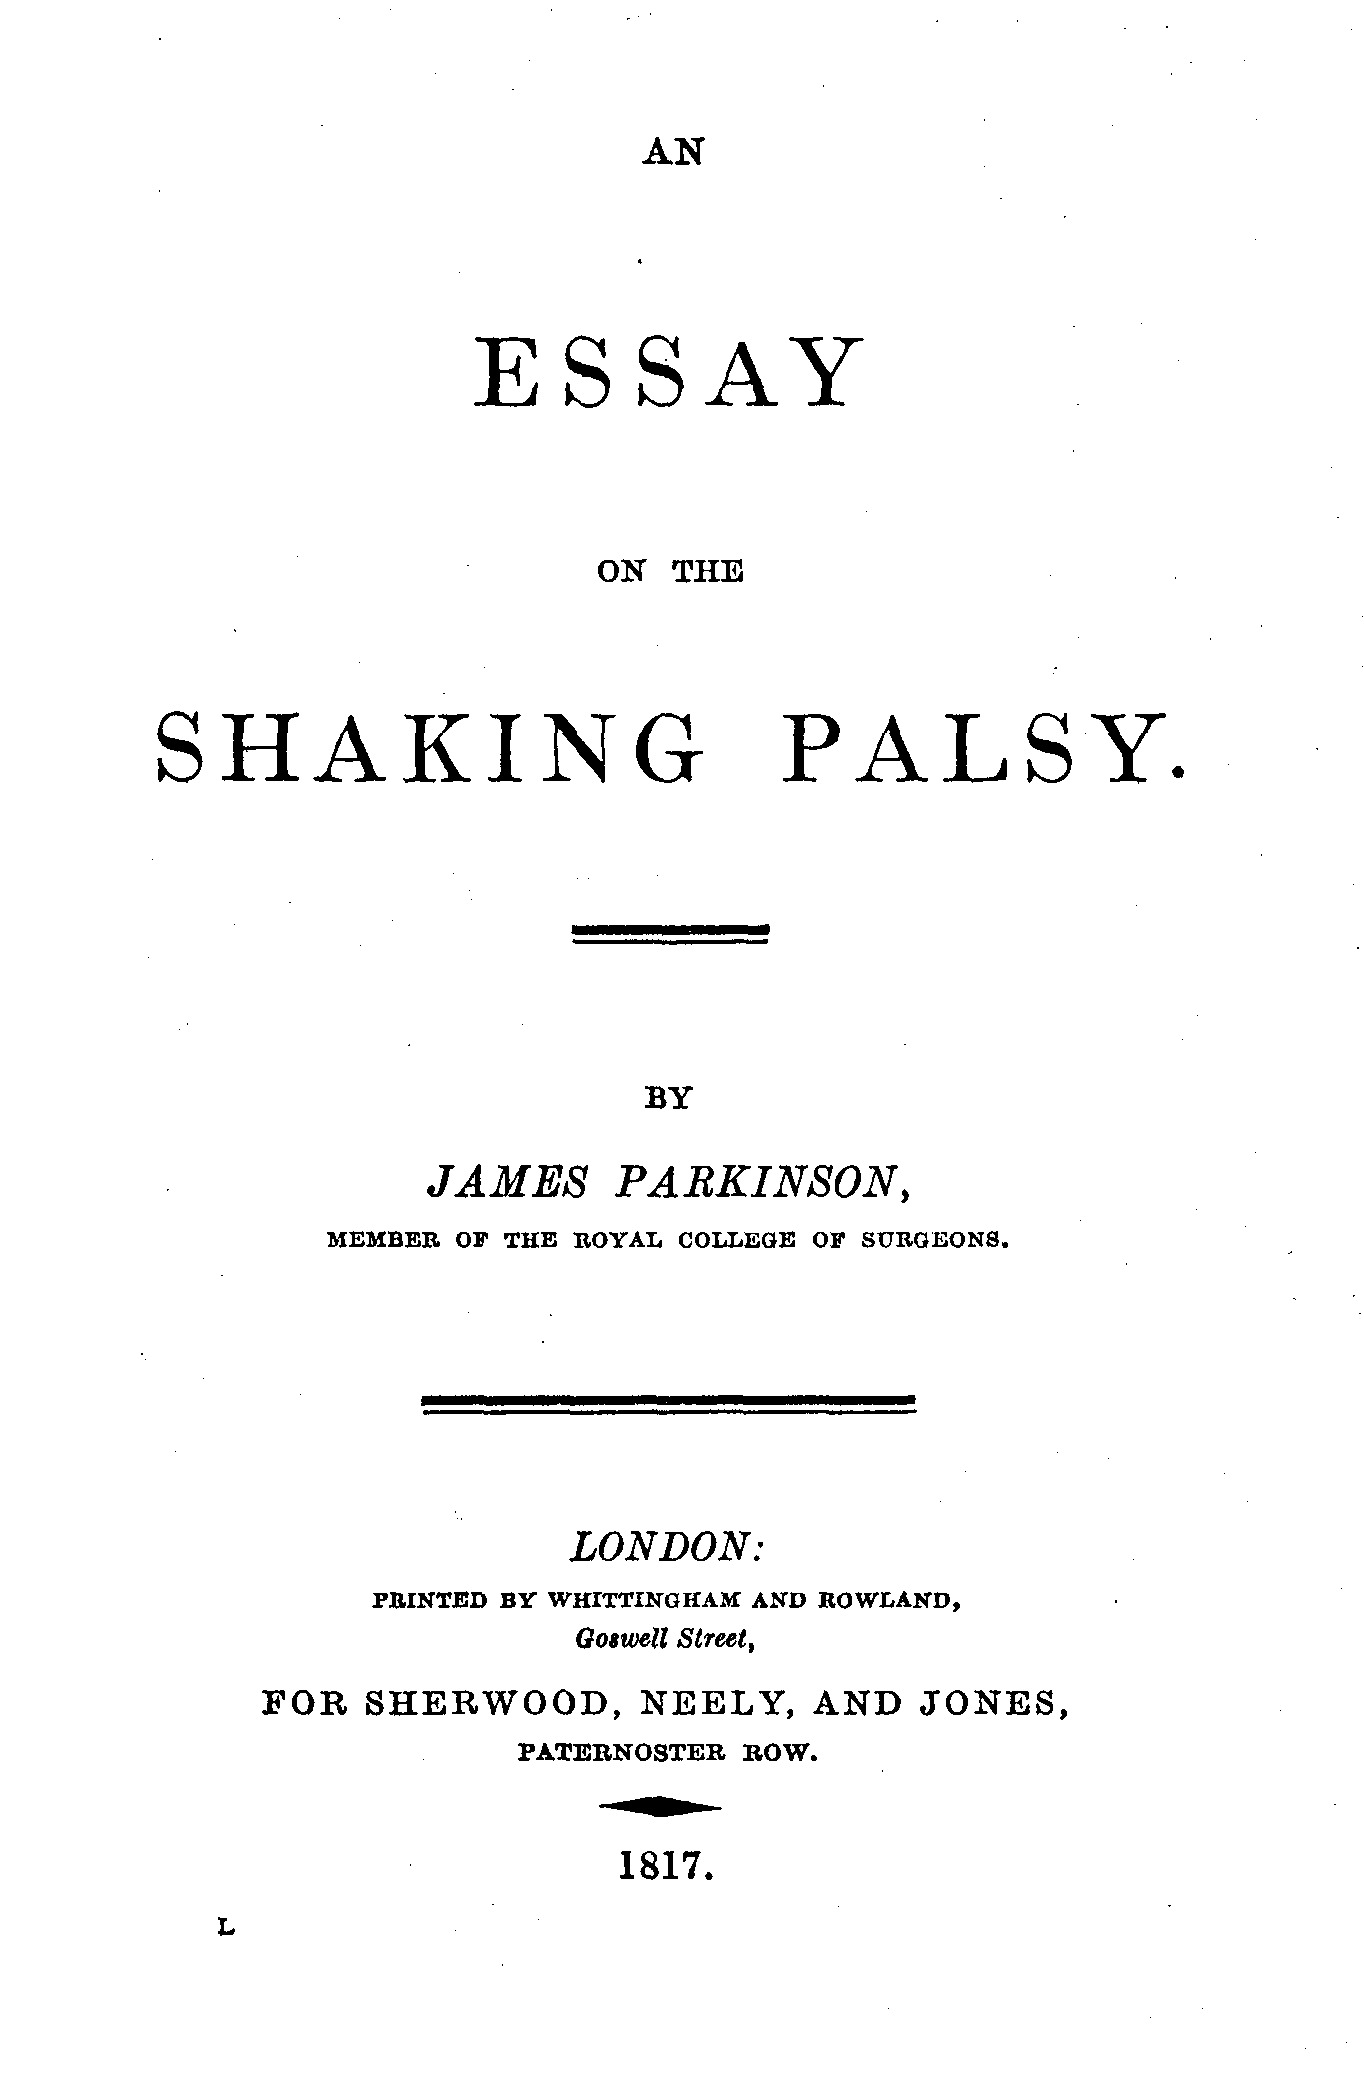 Original Essay File Parkinson An Essay On The Shaking Palsy Title